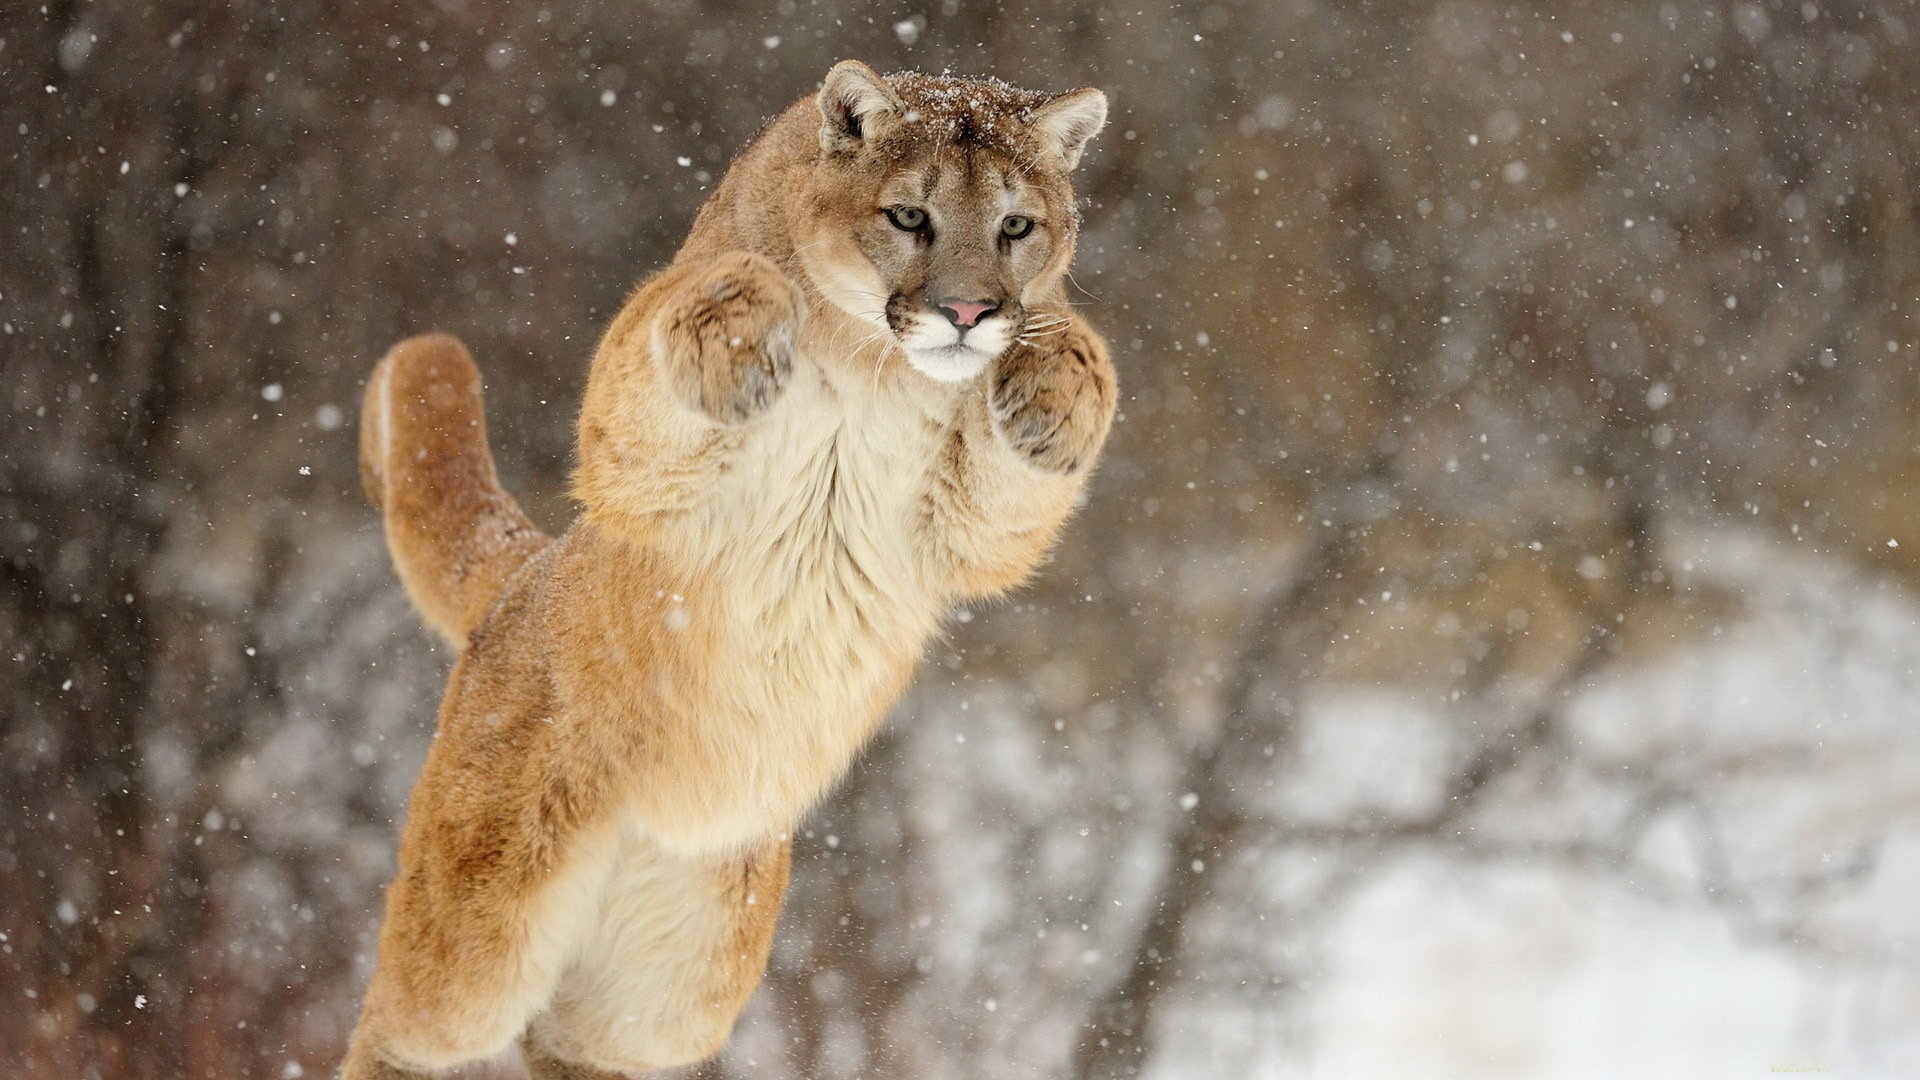 Download hd 1080p Cougar PC background ID:81764 for free